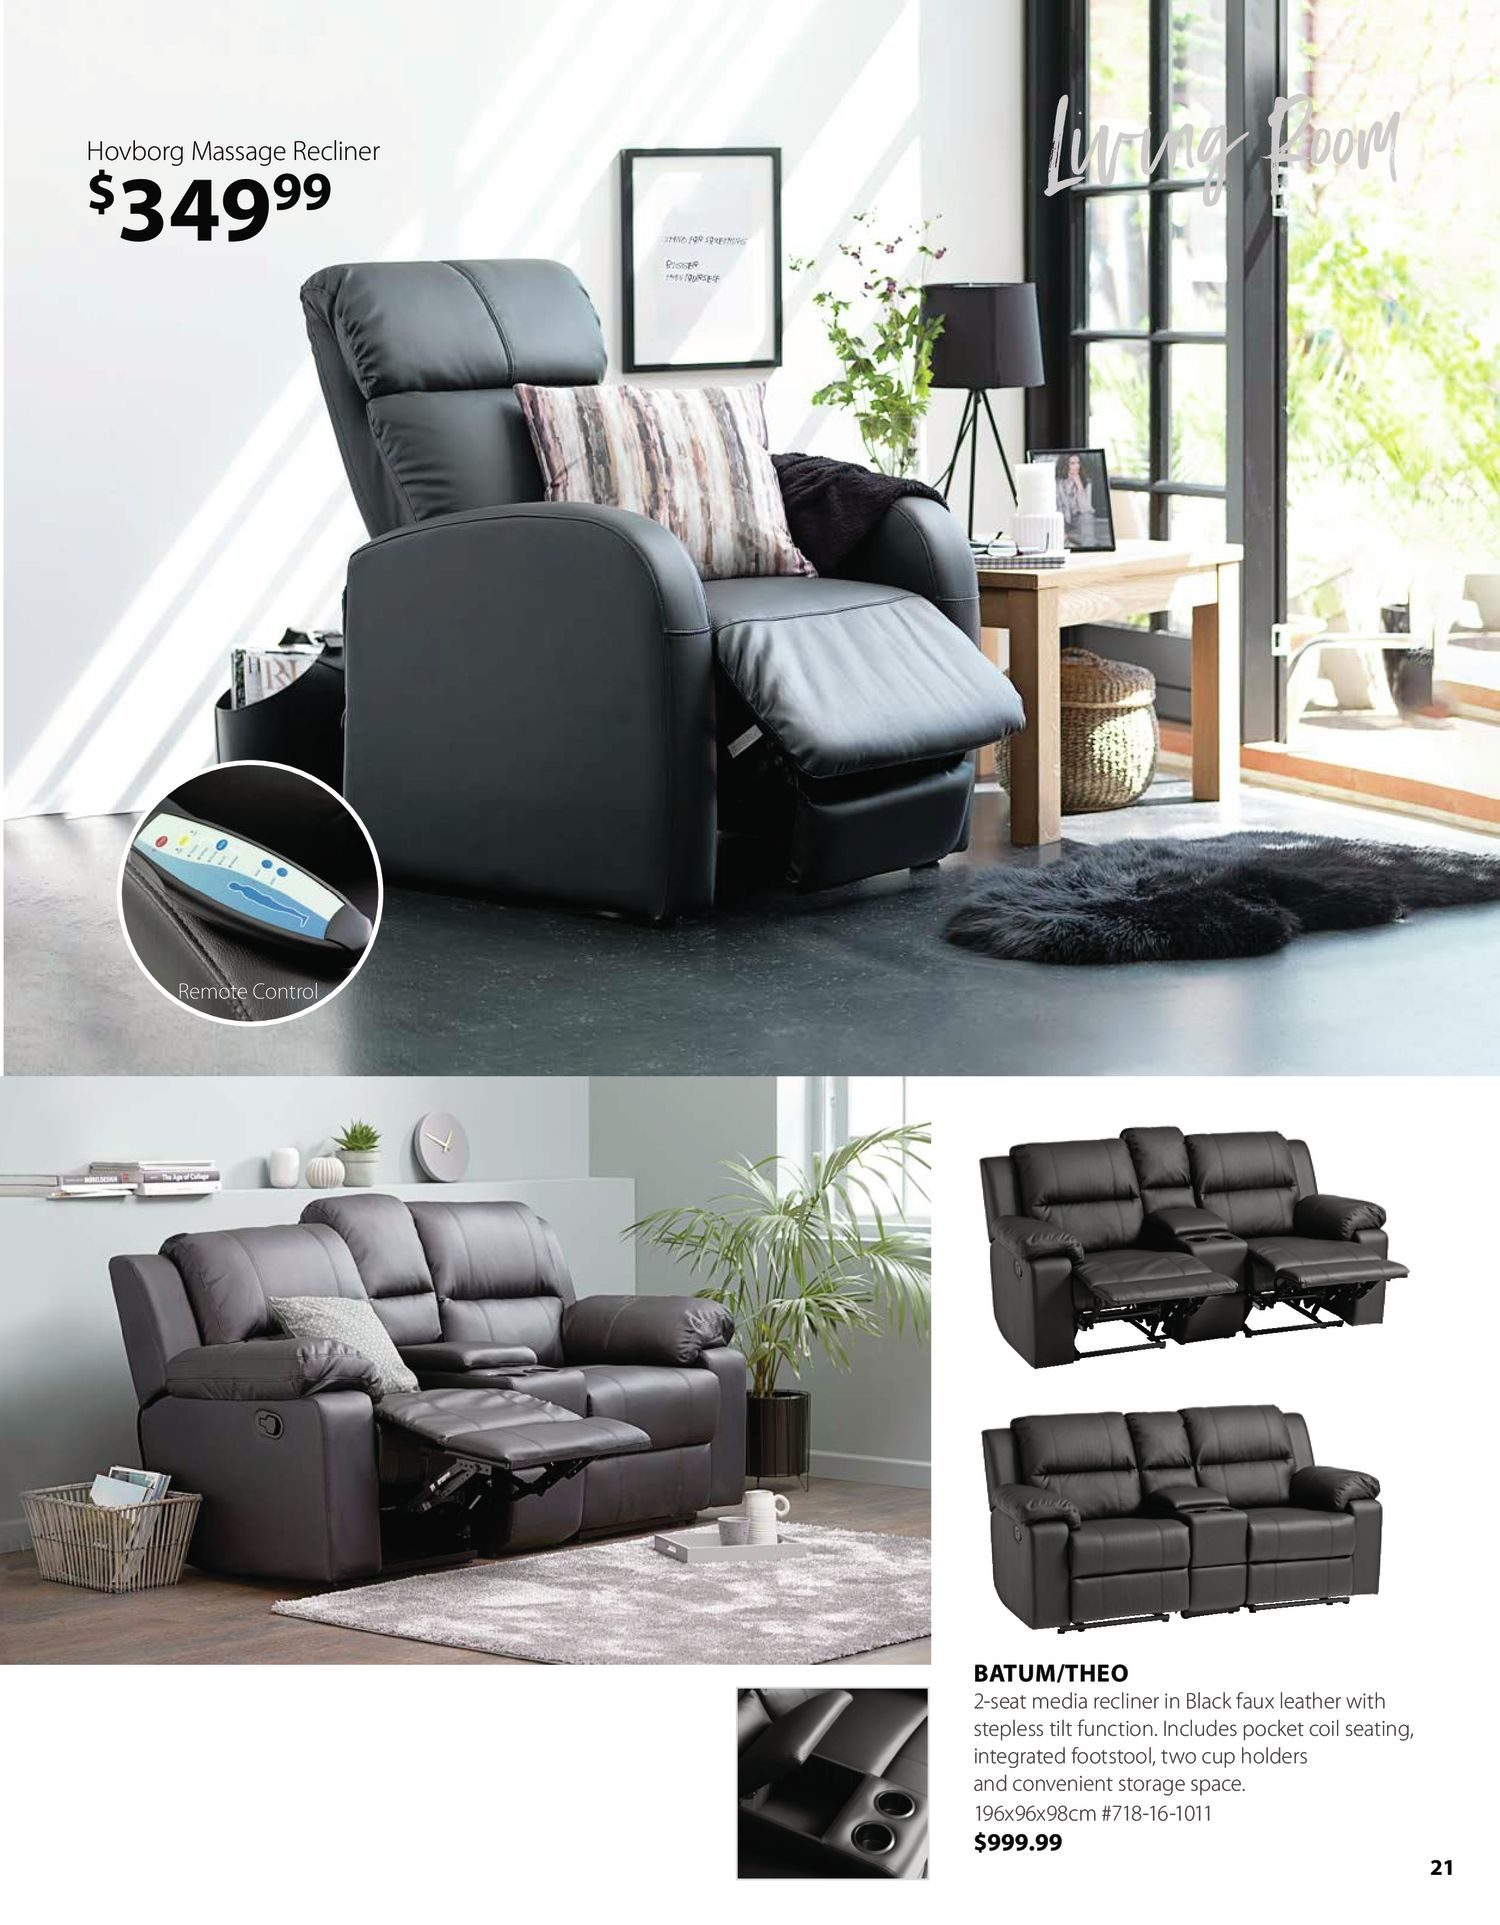 Jysk - Furniture Catalogue - Be Inspired - Page 21